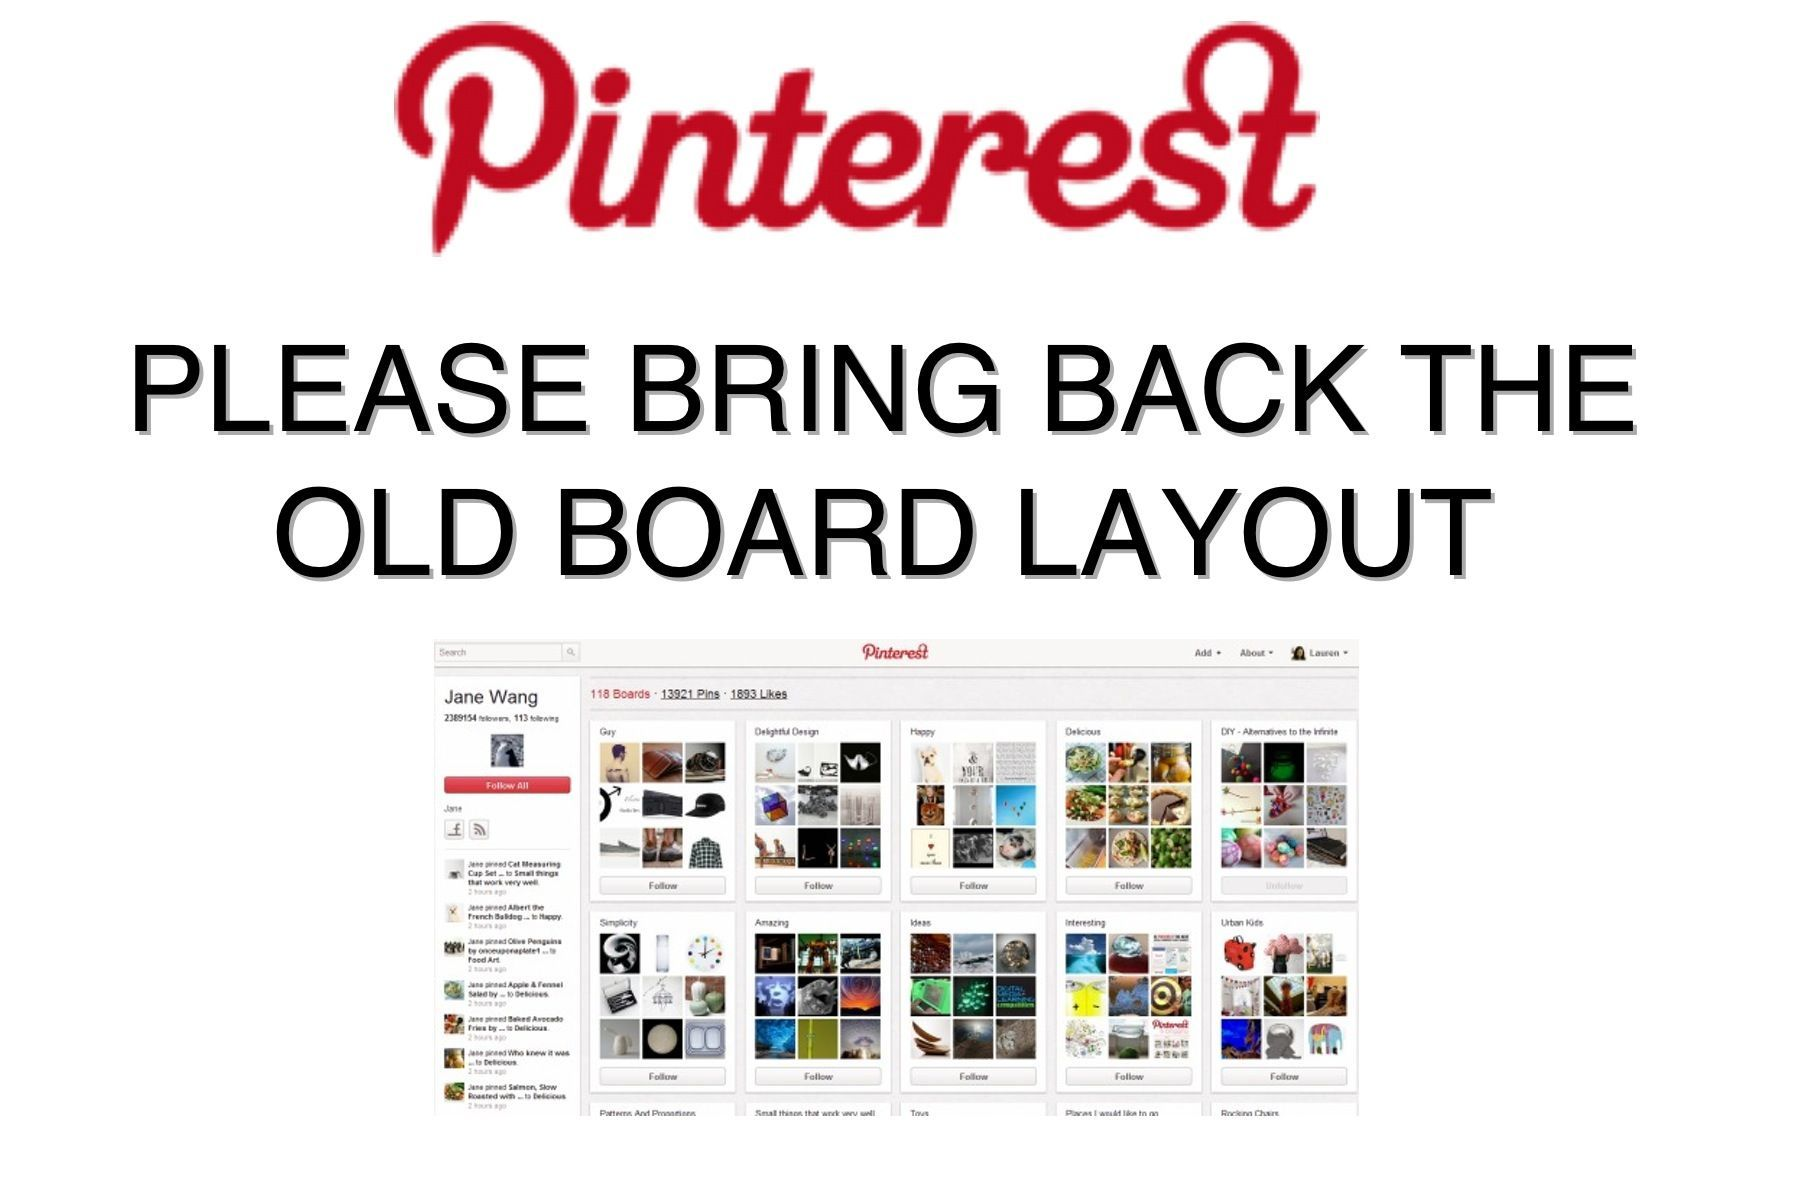 I love Pinterest, but HATE the latest update!! PINTEREST, PLEASE